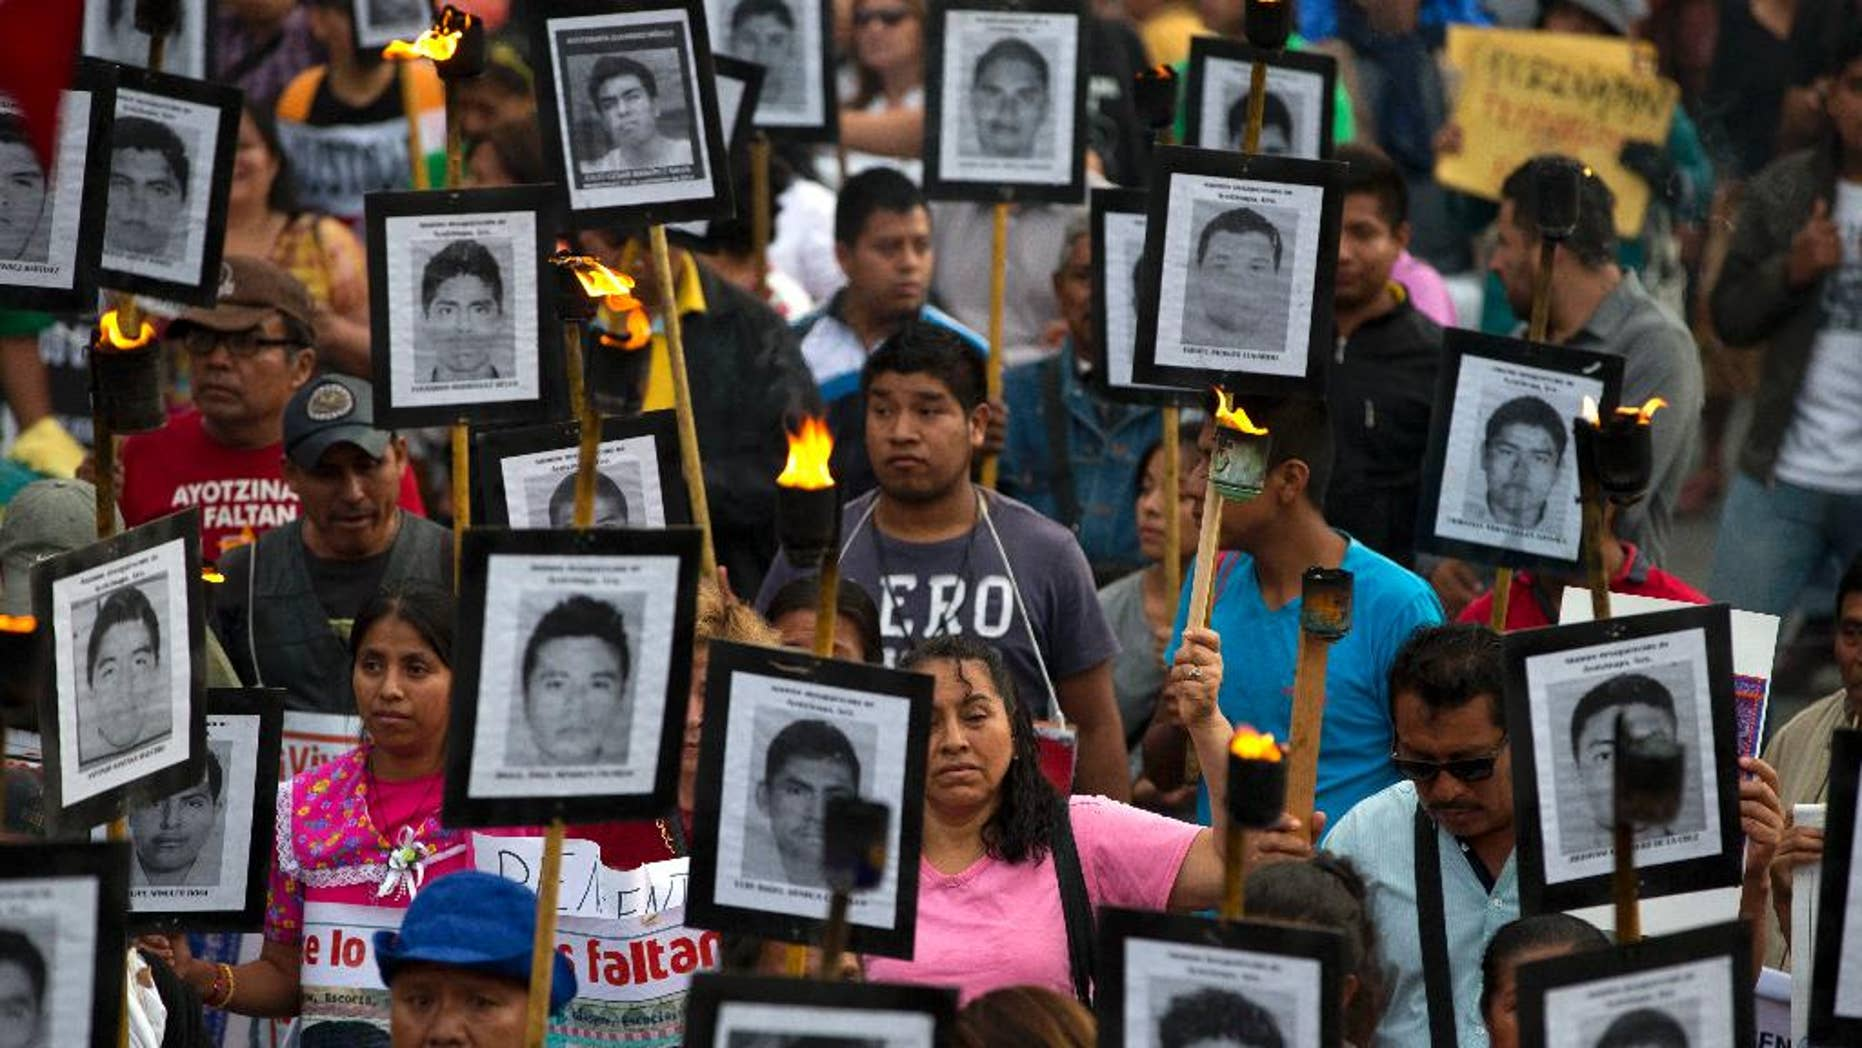 FILE - In this April 26, 2016 file photo, family members and supporters of 43 missing teachers college students carry pictures of the students as they march to demand the case not be closed and that experts' recommendations about new leads be followed, in Mexico City. The most recent forensic investigation of the southern Mexico garbage dump where the government says 43 students were incinerated did not confirm there was a fire there that night. It shows the experts found evidence the Cocula dump had been the site of at least five fires, but could not determine when. Remains of 17 people were also found, but it was unknown when they were burned. (AP Photo/Rebecca Blackwell, File)